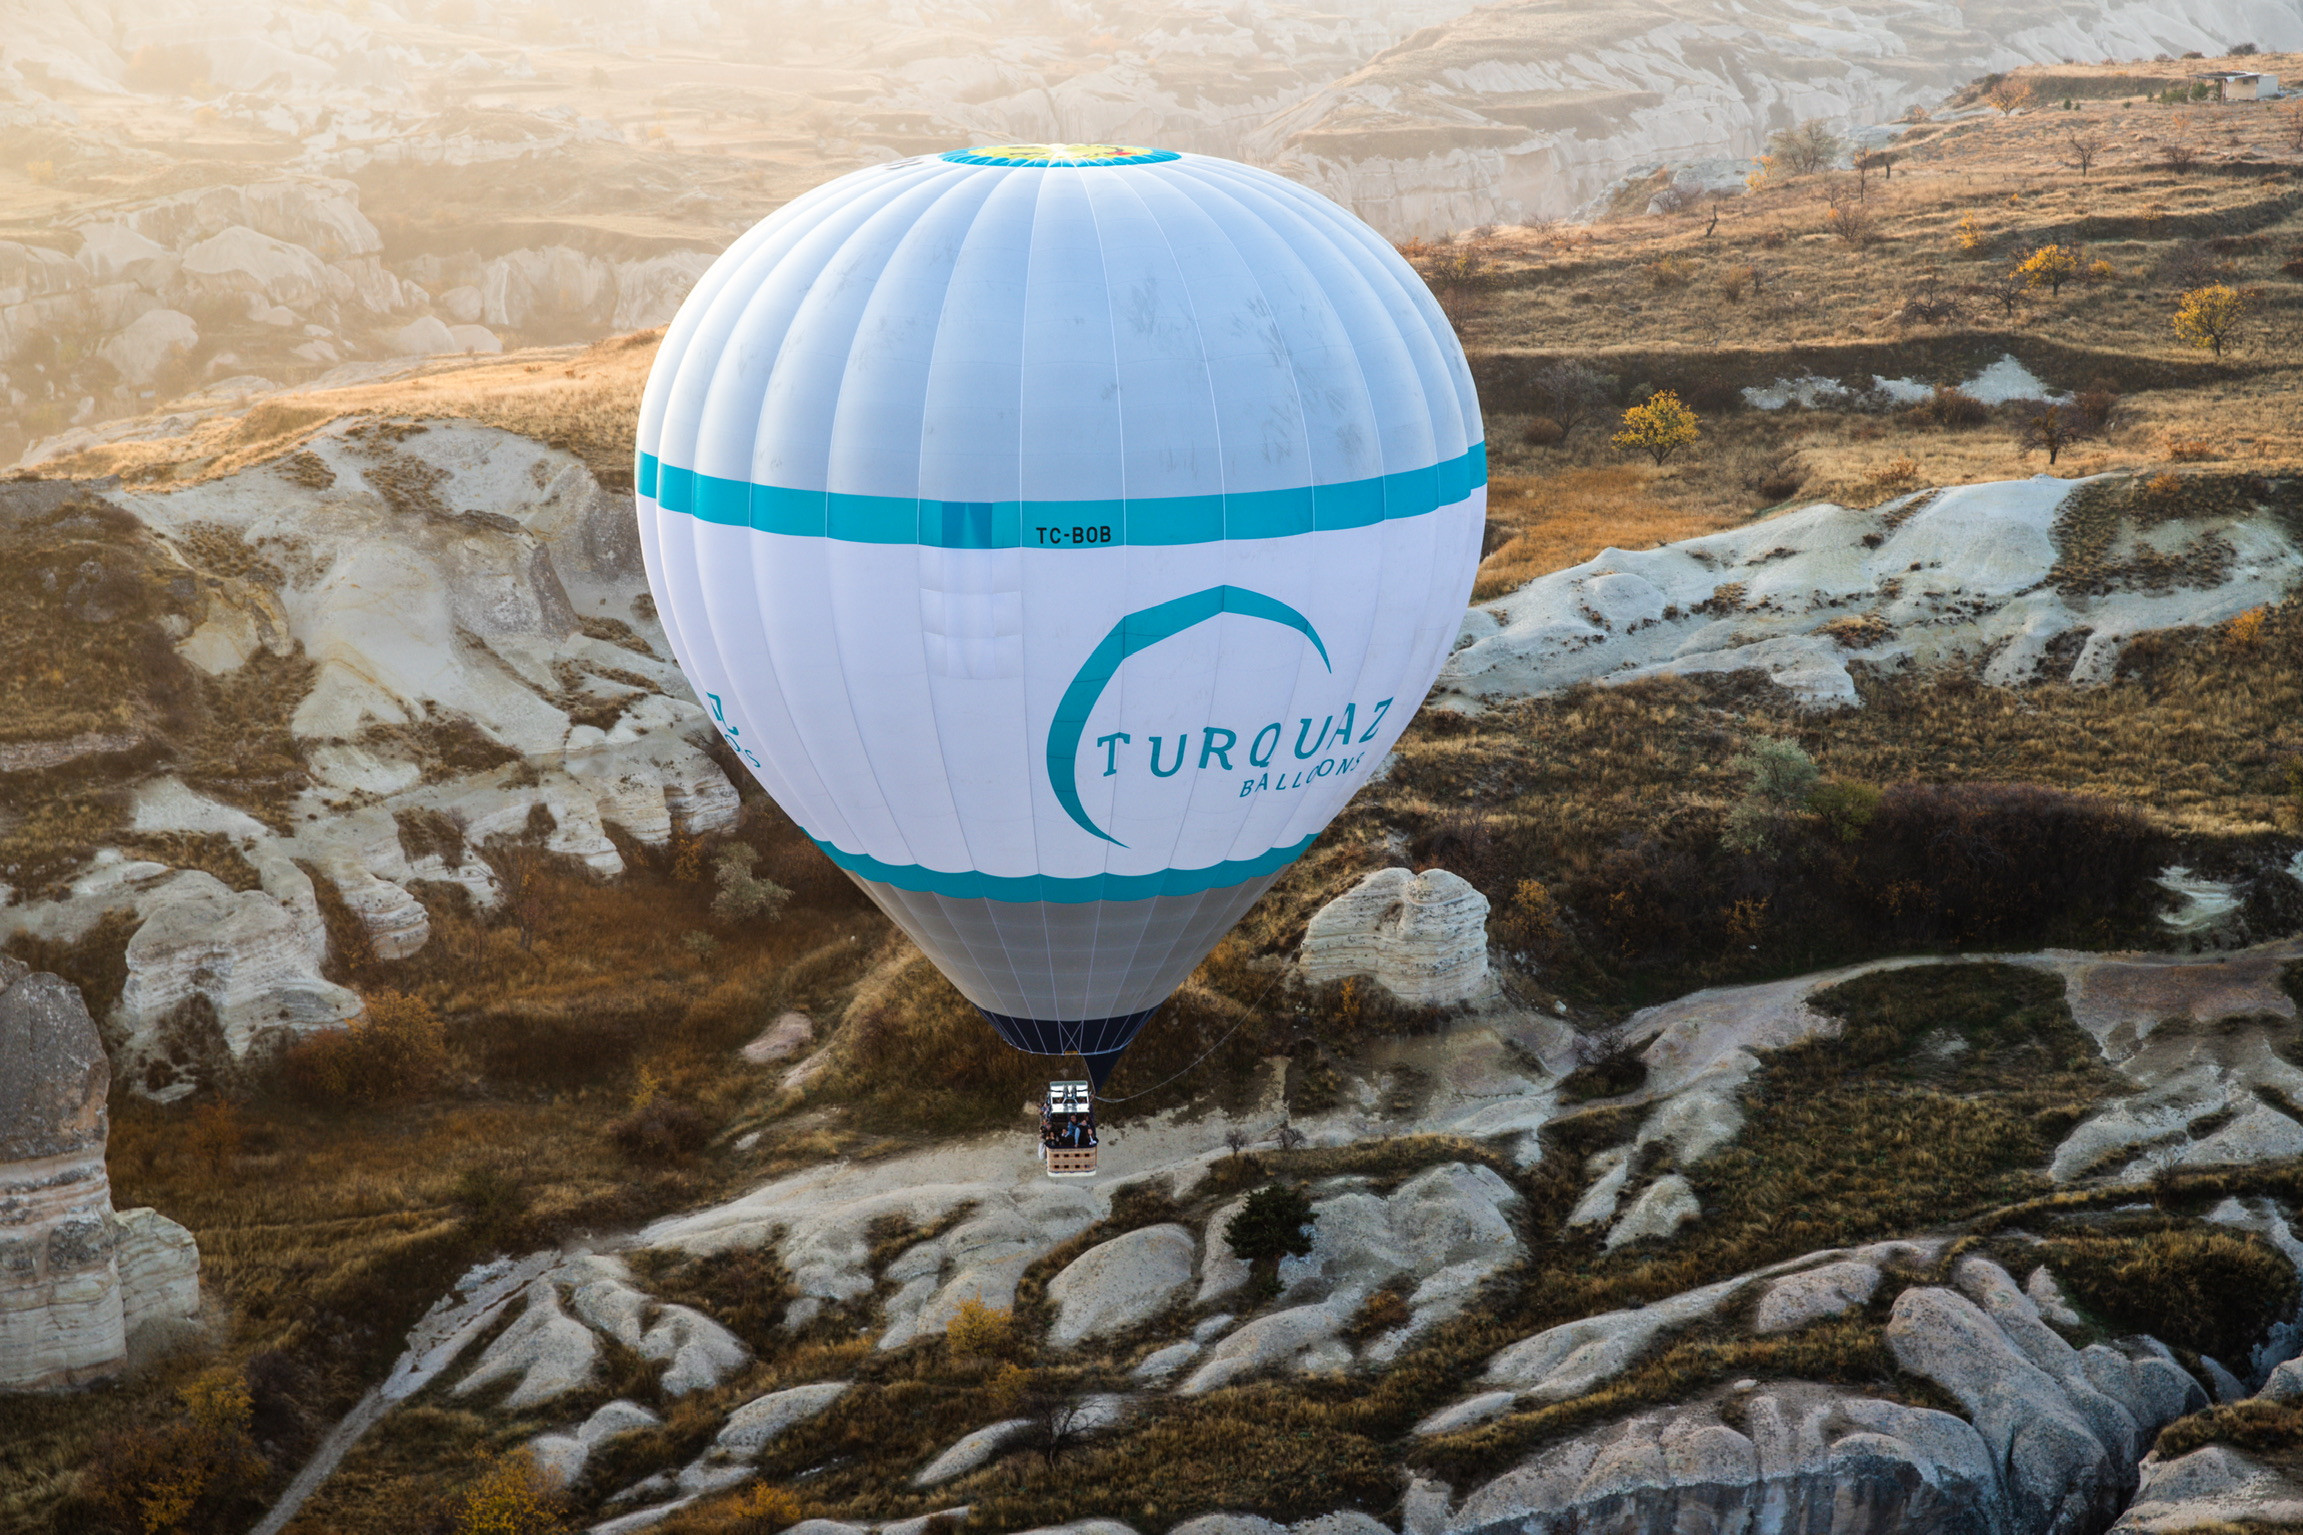 Private Balloon Rides Over Cappadocia